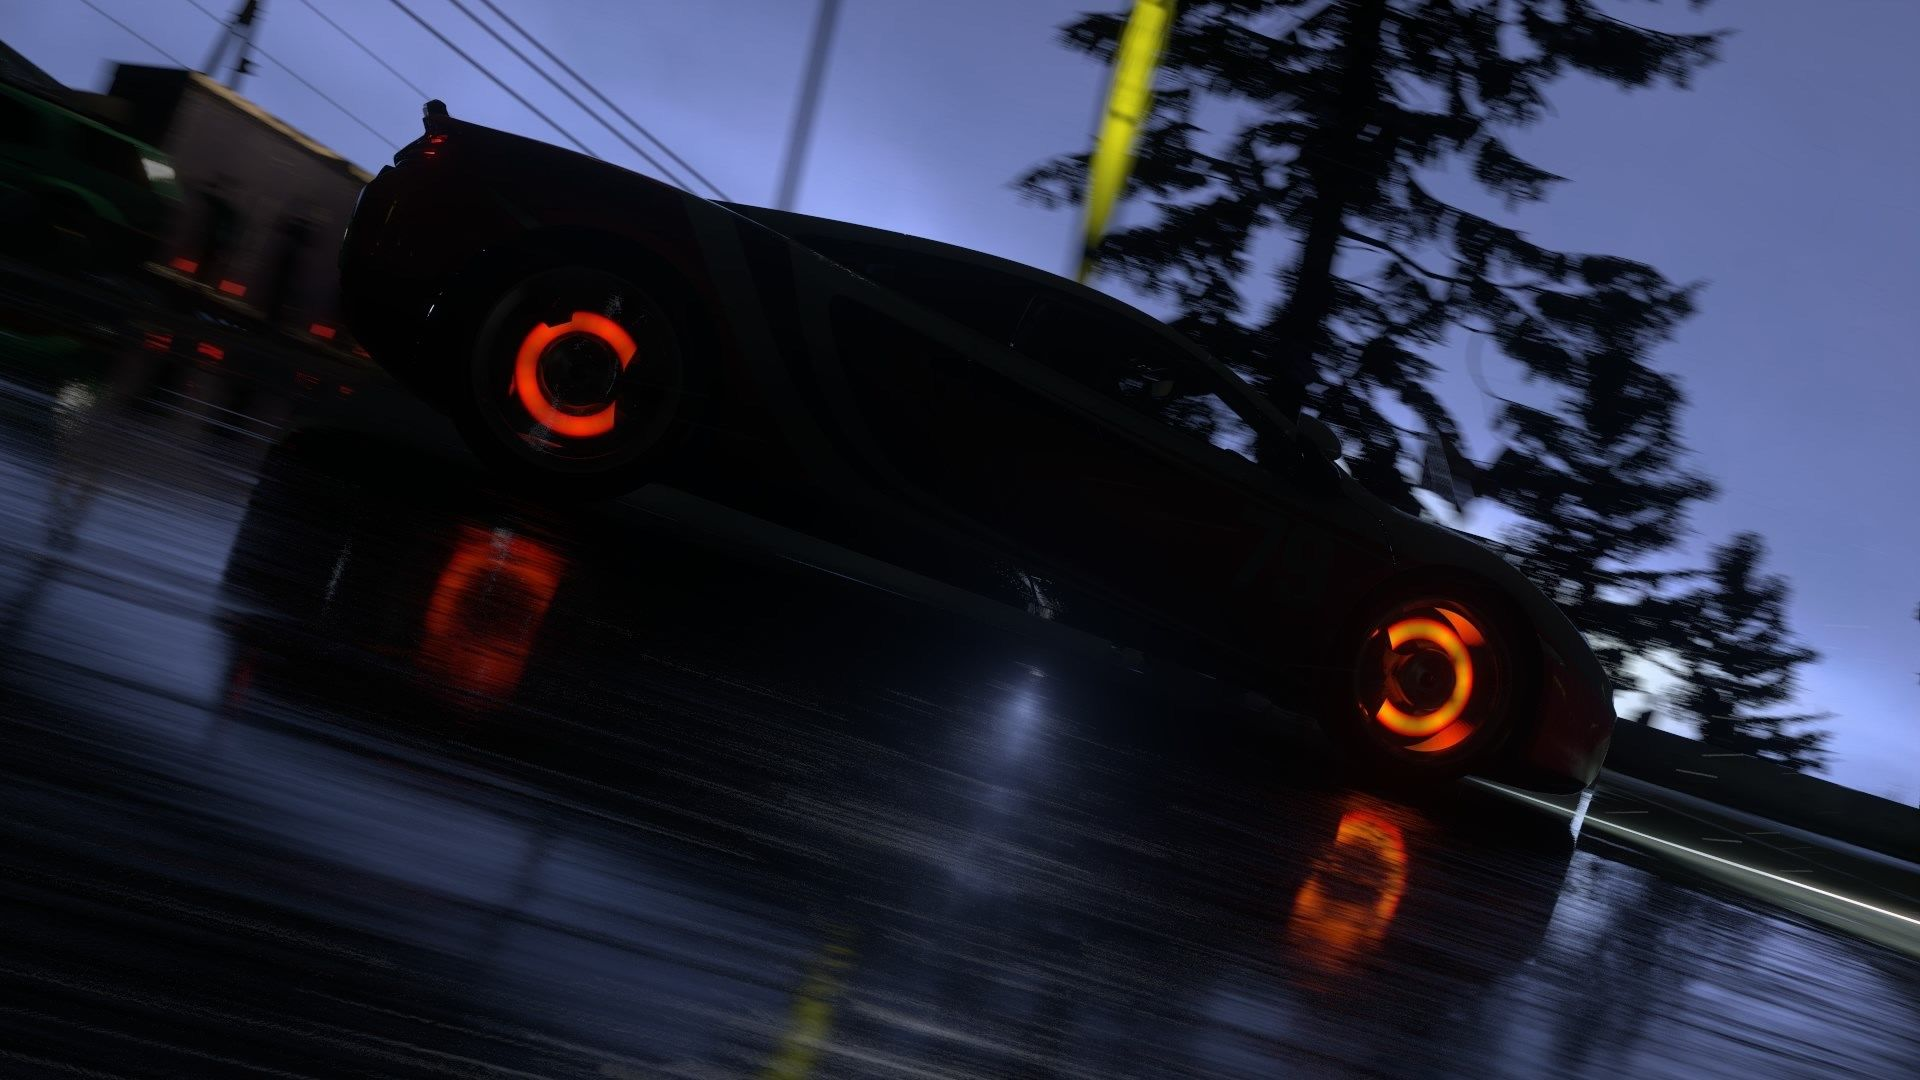 Awesome driveclub picture, Bacon Murphy 2017-03-27